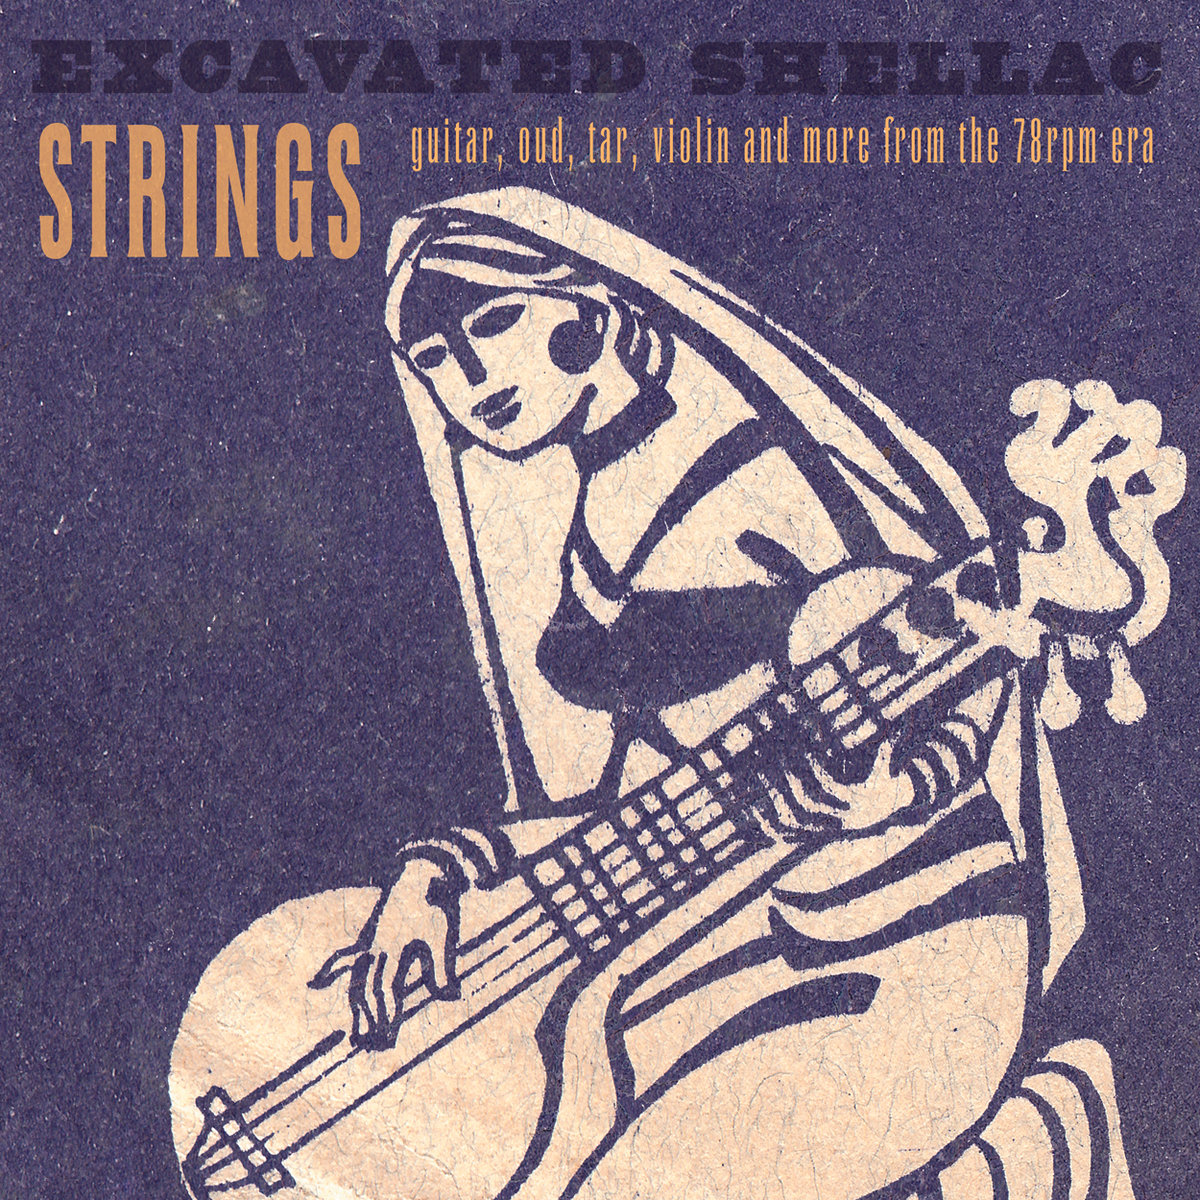 Excavated Shellac: Strings Release Date: April 08, 2010  Label: Parlortone/Dust-to-Digital   SERVICE: Restoration, Mastering SOURCE MATERIAL: 78 rpm recrords NUMBER OF DISCS: 1 GENRE: World FORMAT: LP